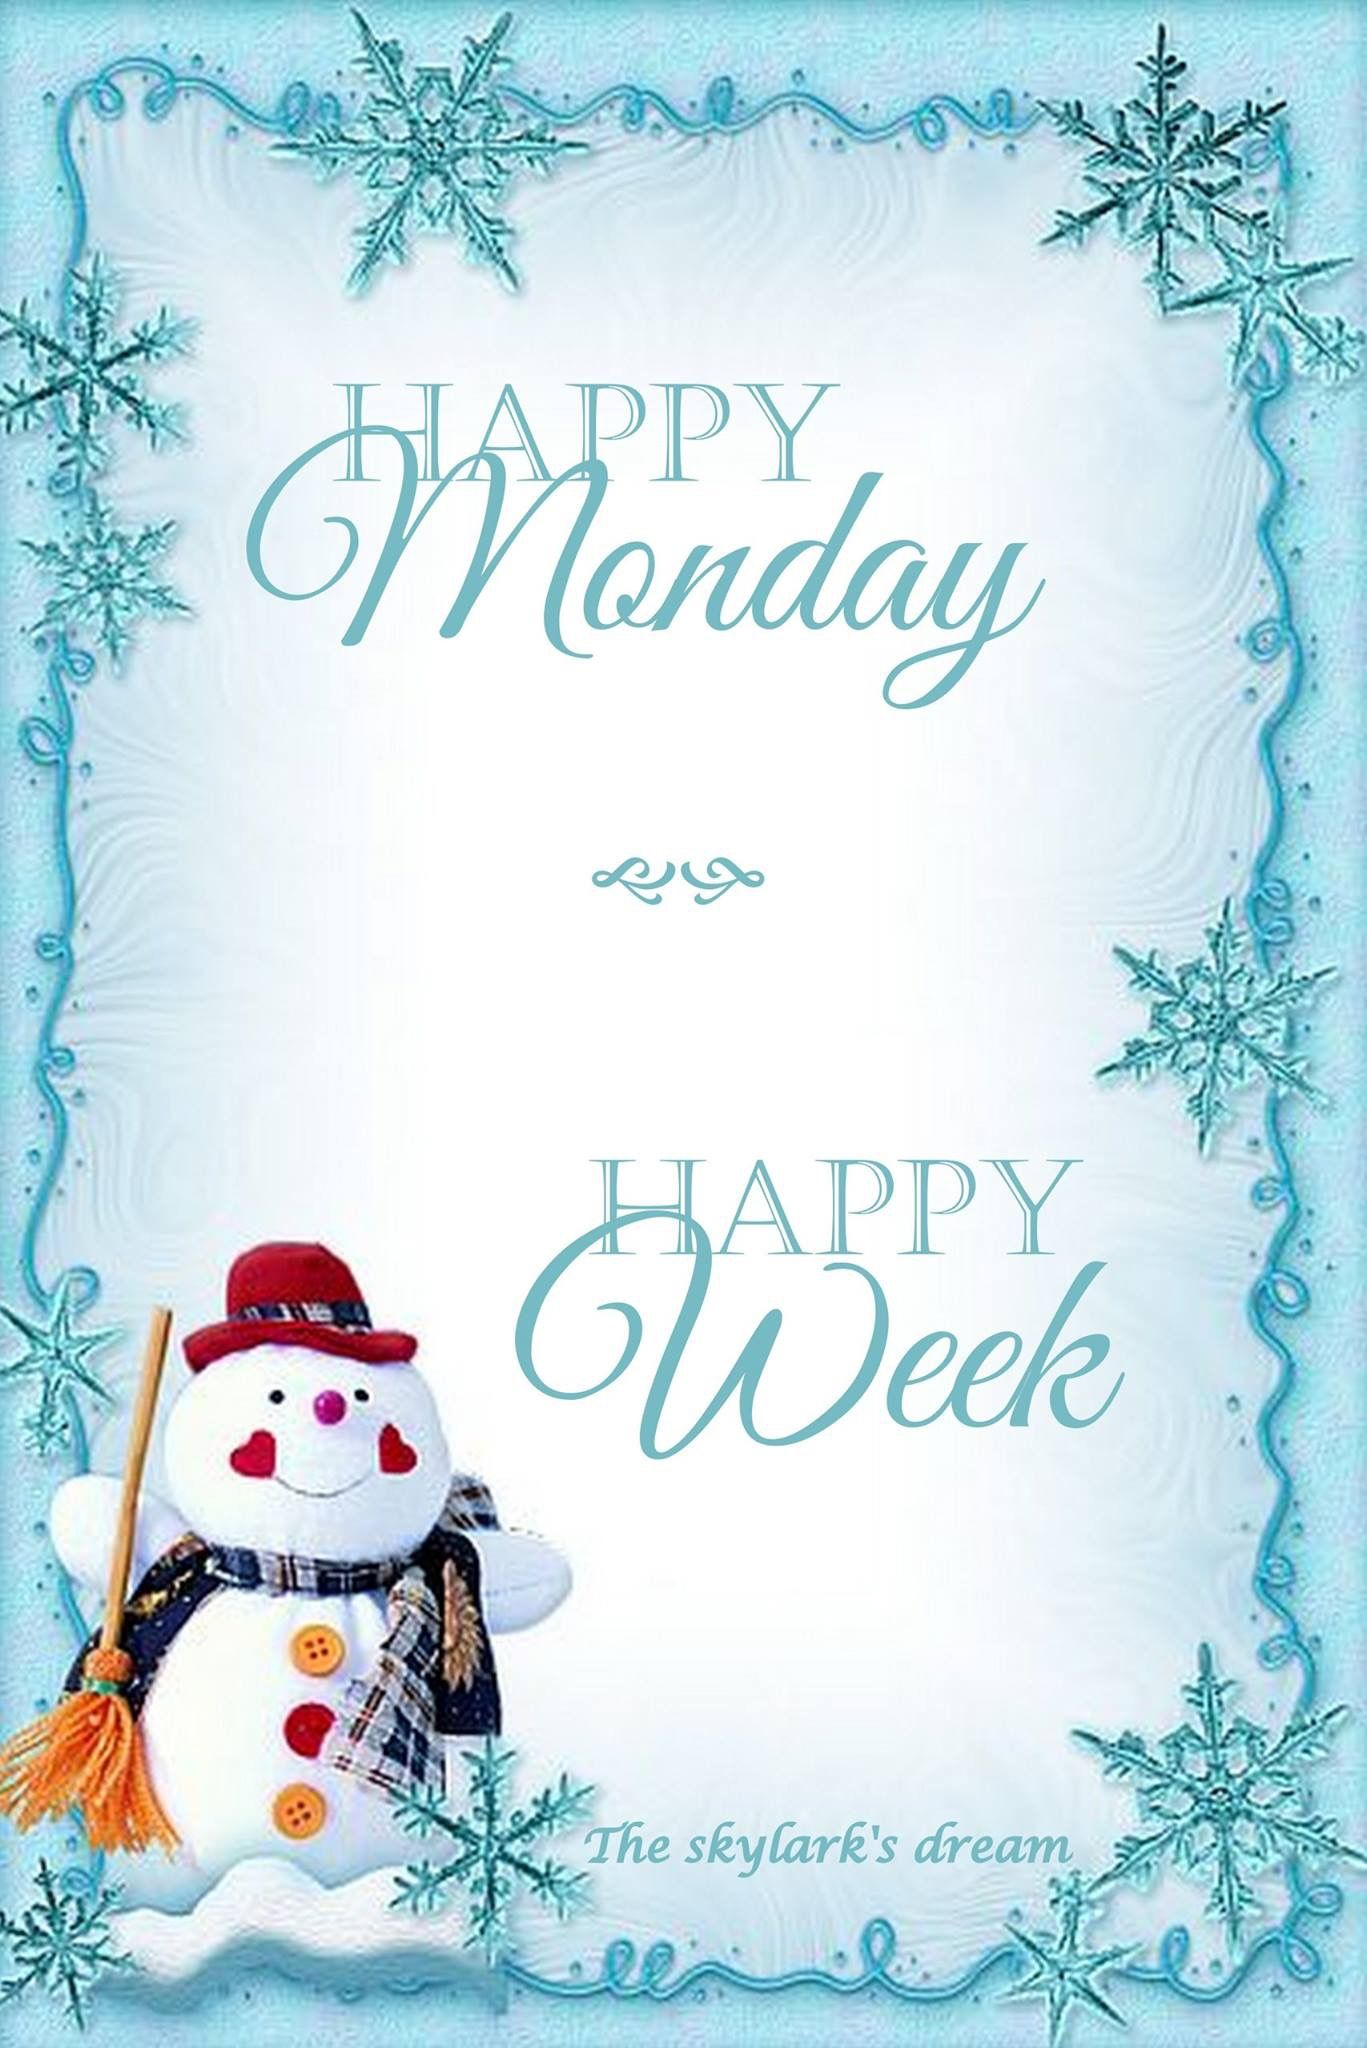 Good morning sister and all happy monday and a lovely week god good morning sister and all happy monday and a lovely week god bless m4hsunfo